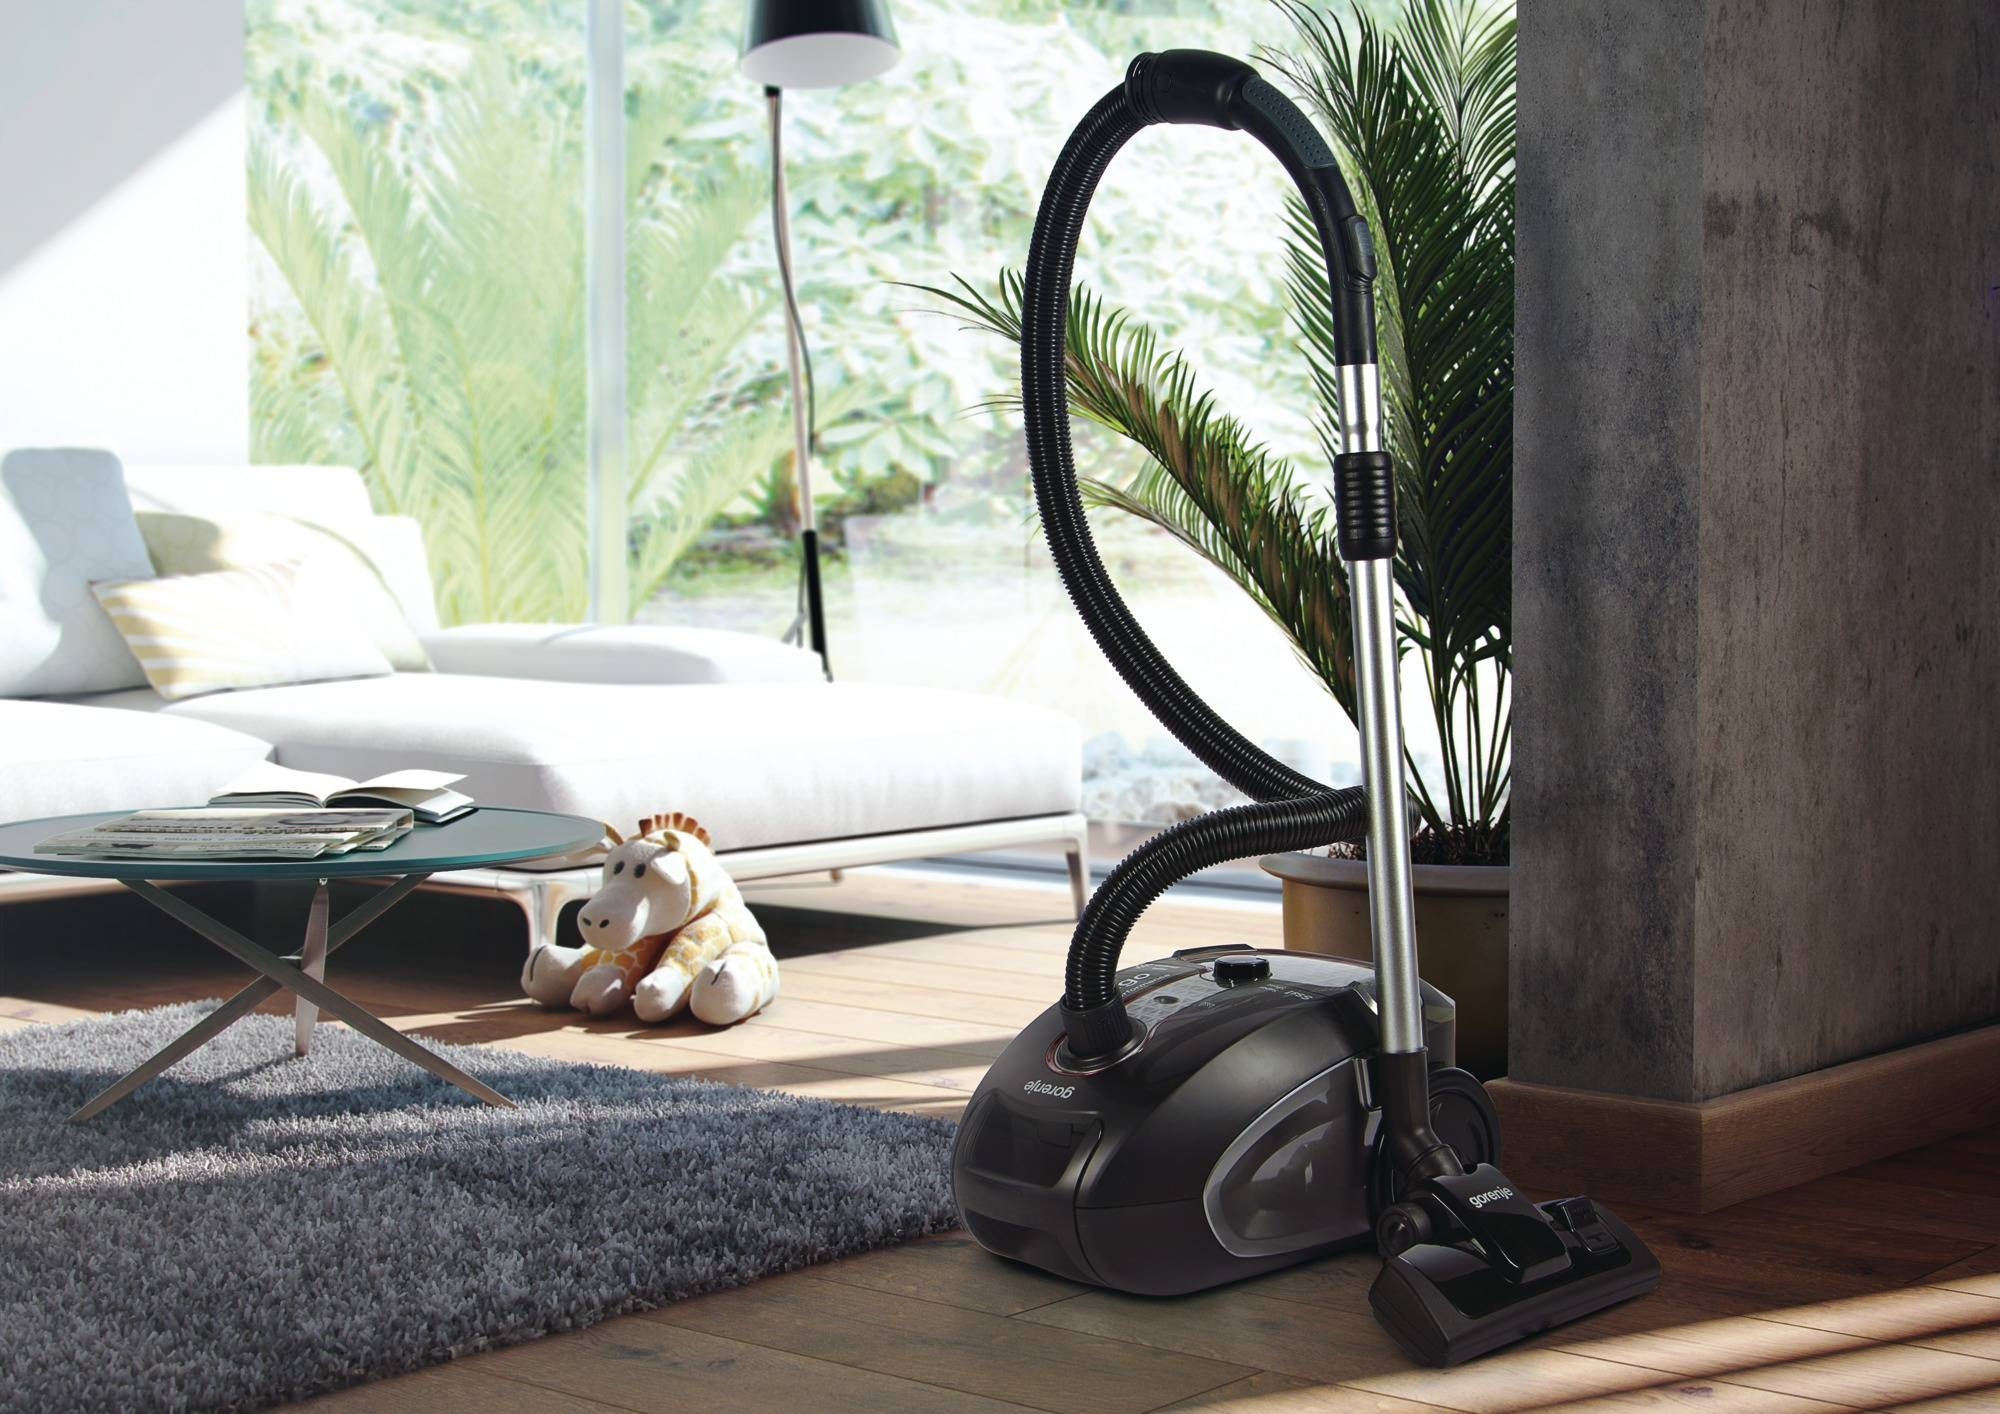 ... Vacuum Cleaners With Their Advanced Technology, Quality Materials And  Excellent Design, Efficiently Assist You, When Taking Care Of Your Home.